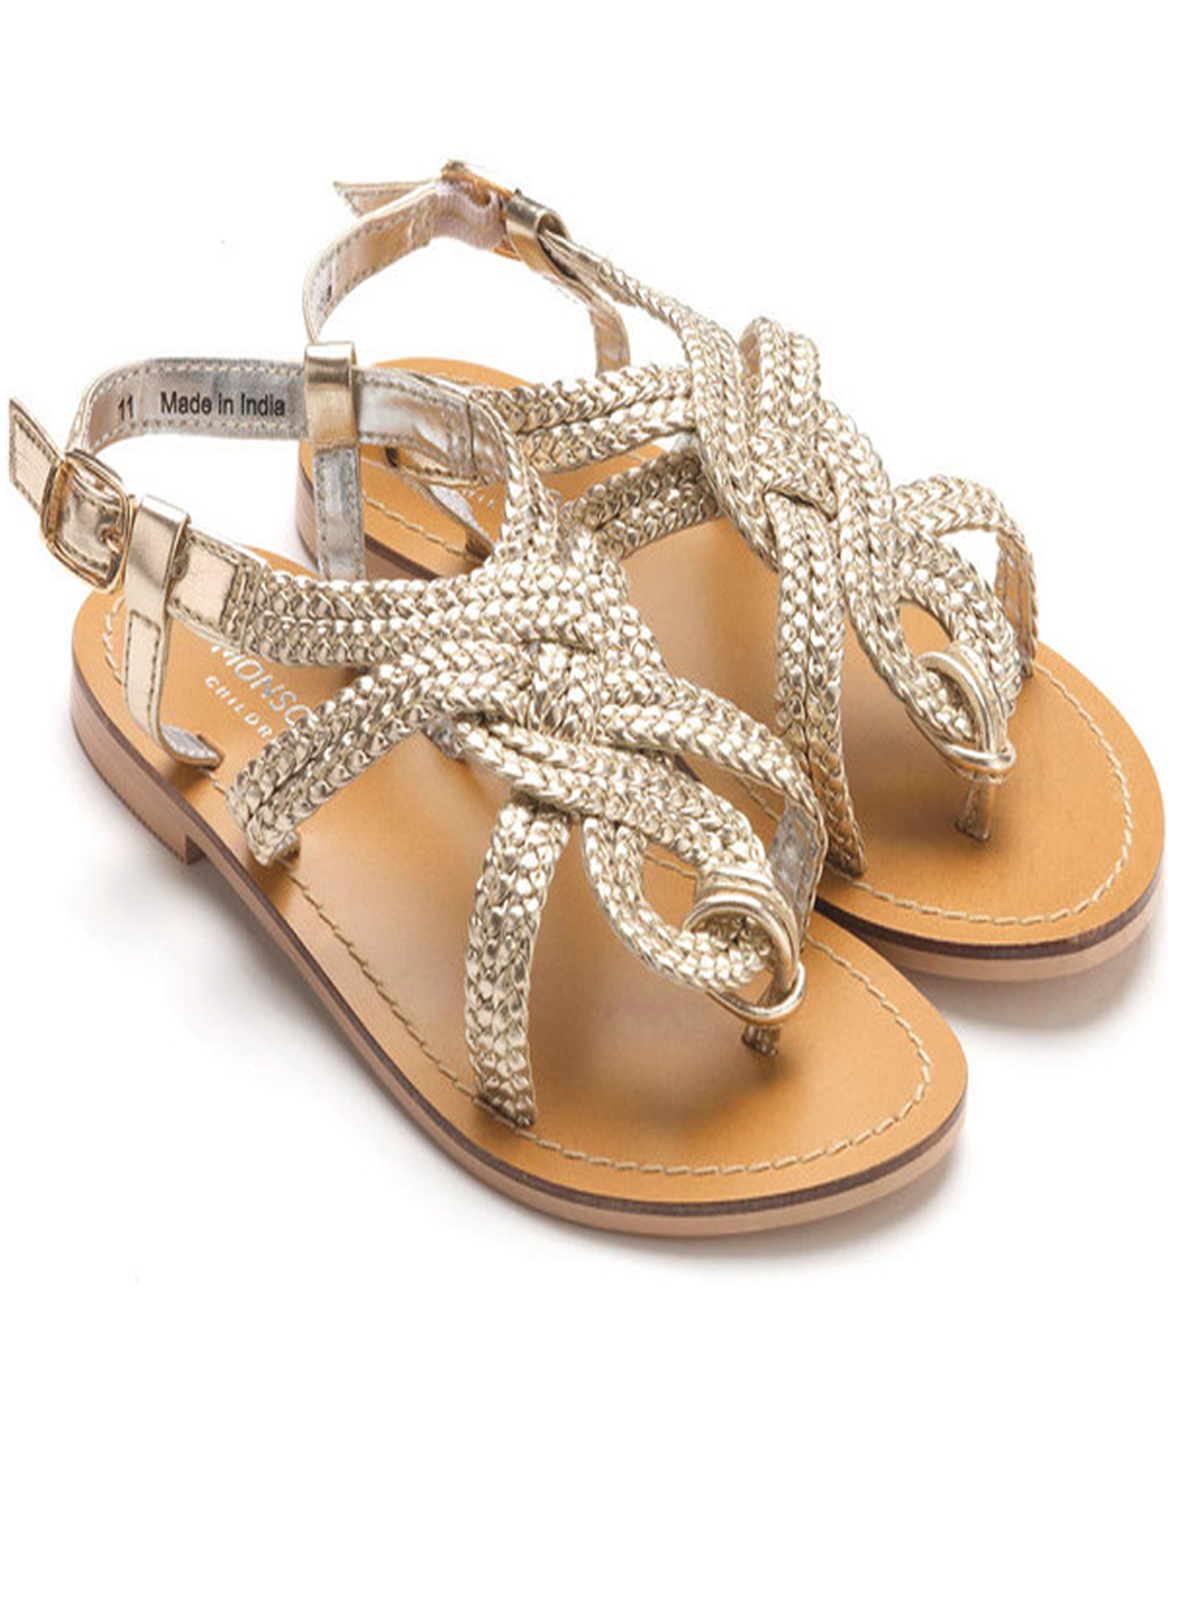 1470b8dbdee7ef M0nsoon Girls GOLD Plaited Leather Sandals - Shoe Size 7 to 13